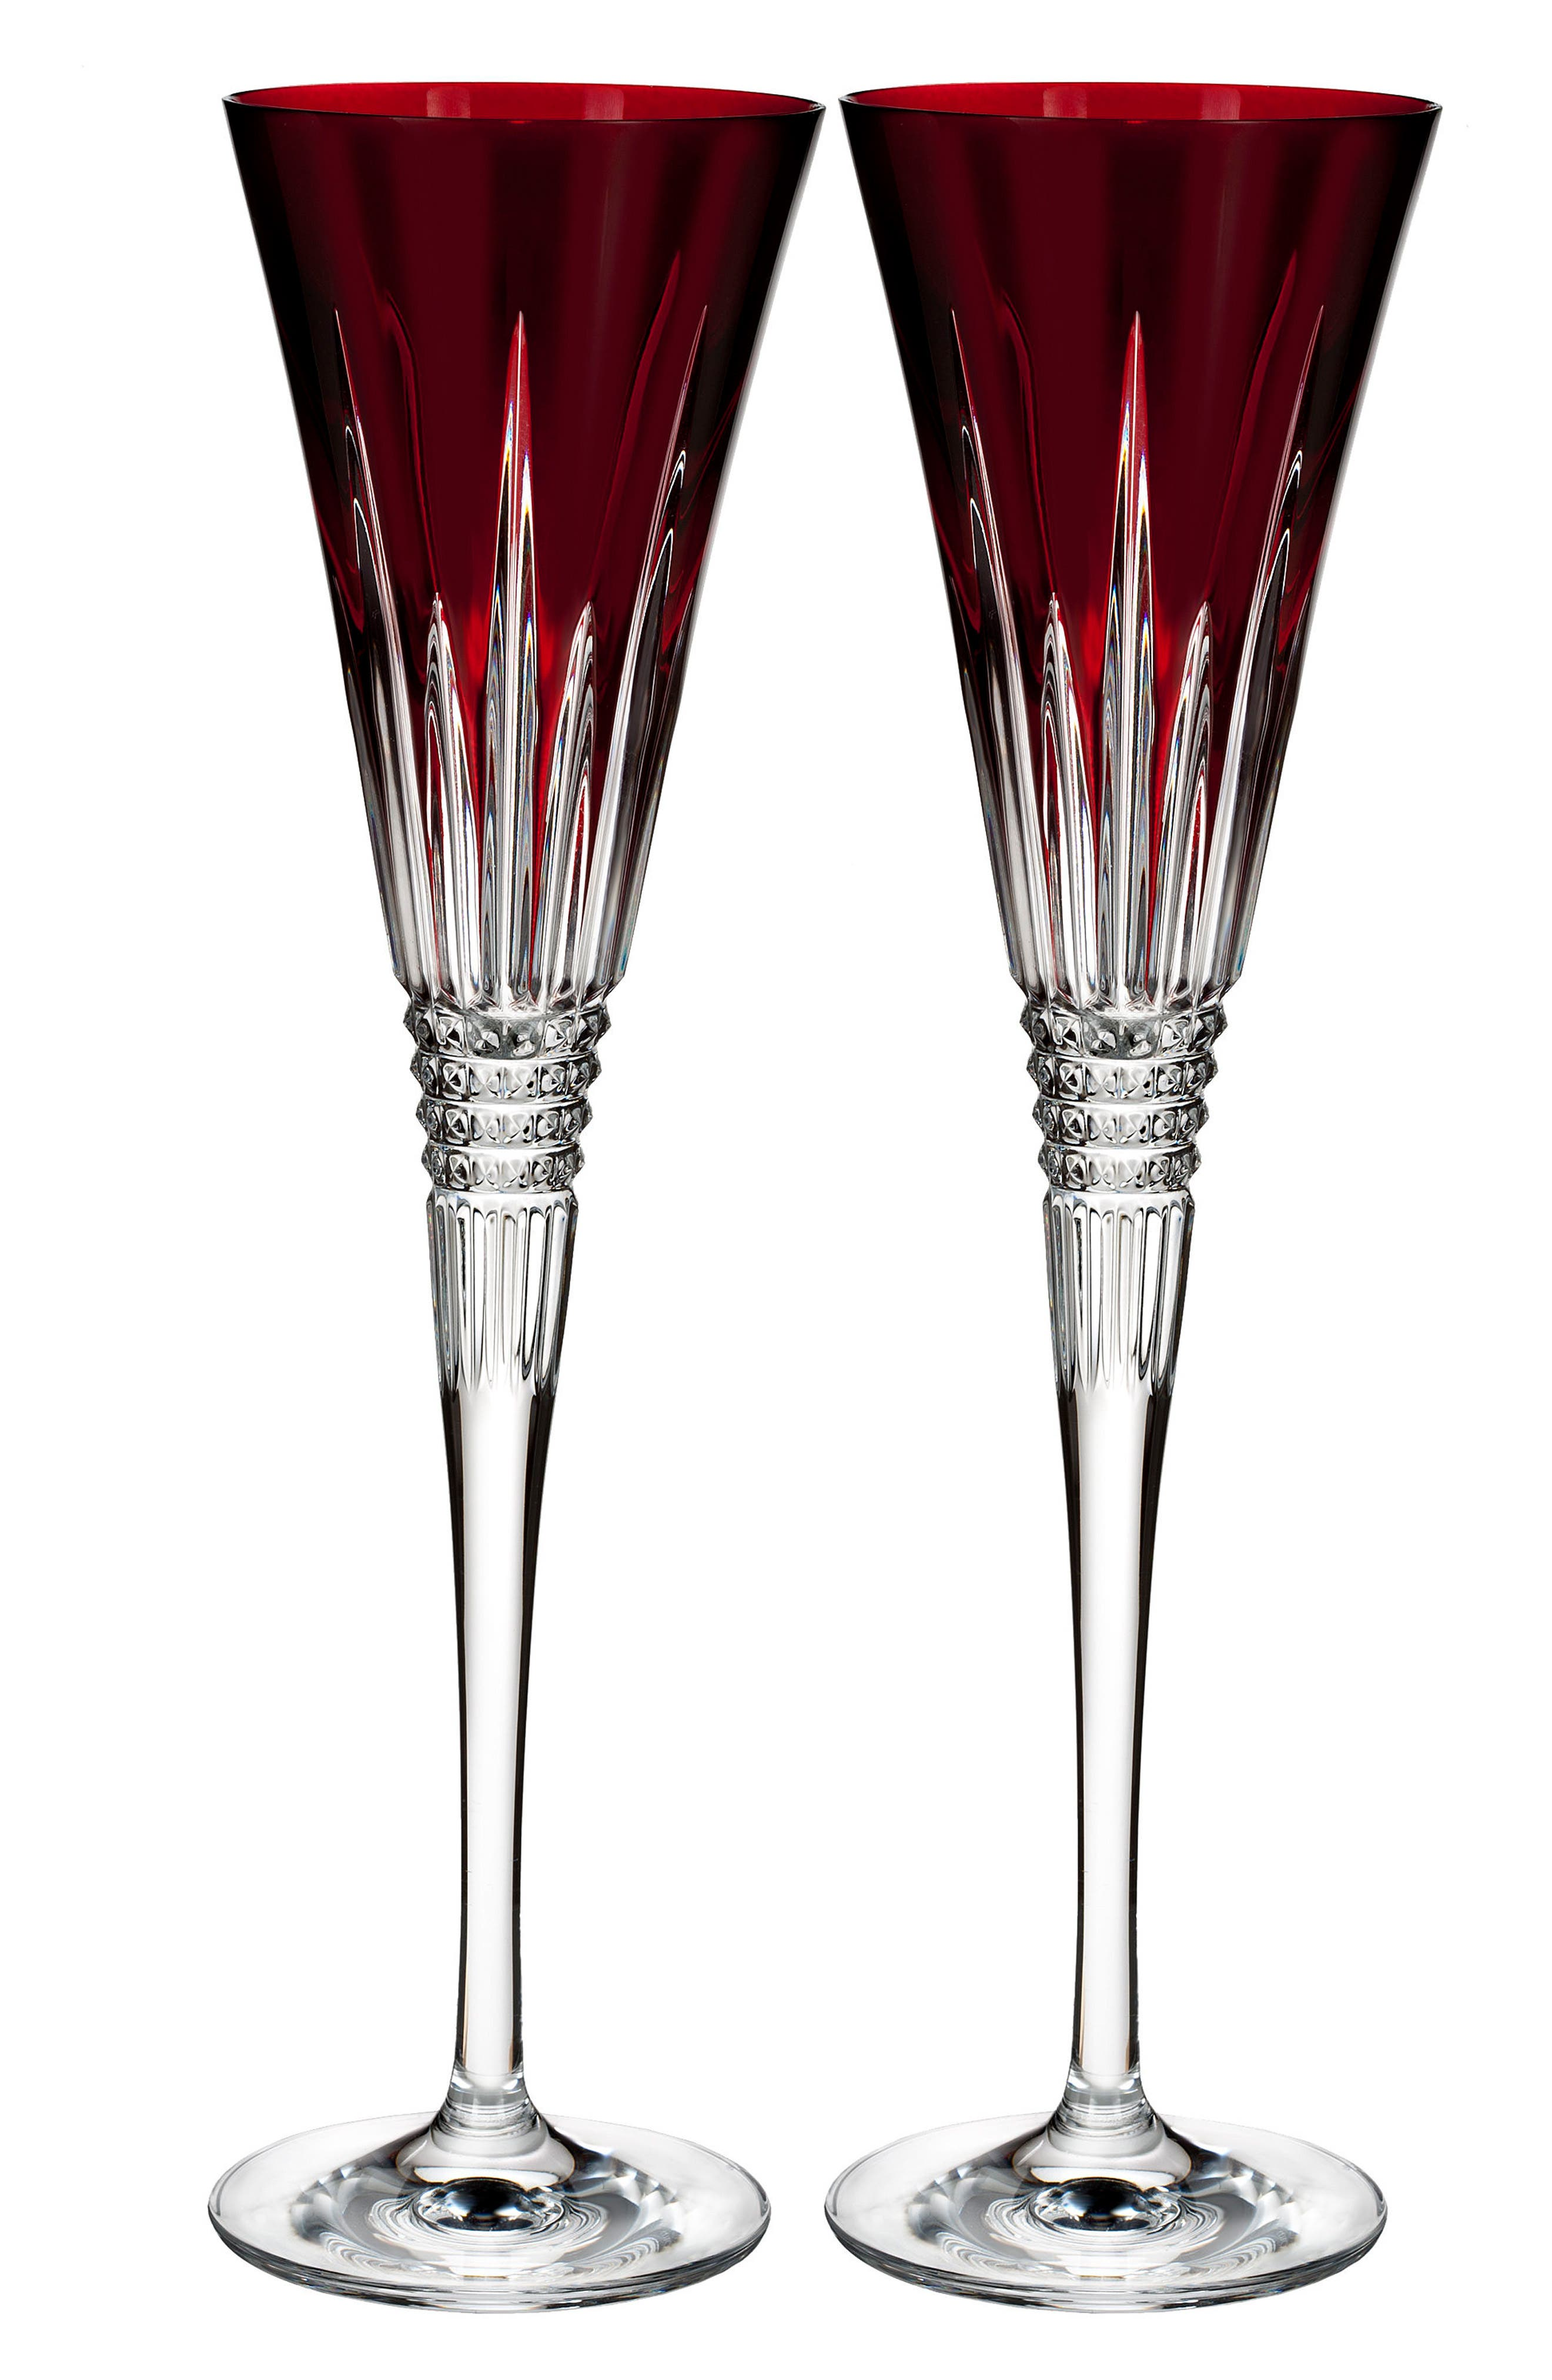 Lismore Diamond Set of 2 Red Lead Crystal Champagne Flutes,                             Main thumbnail 1, color,                             100